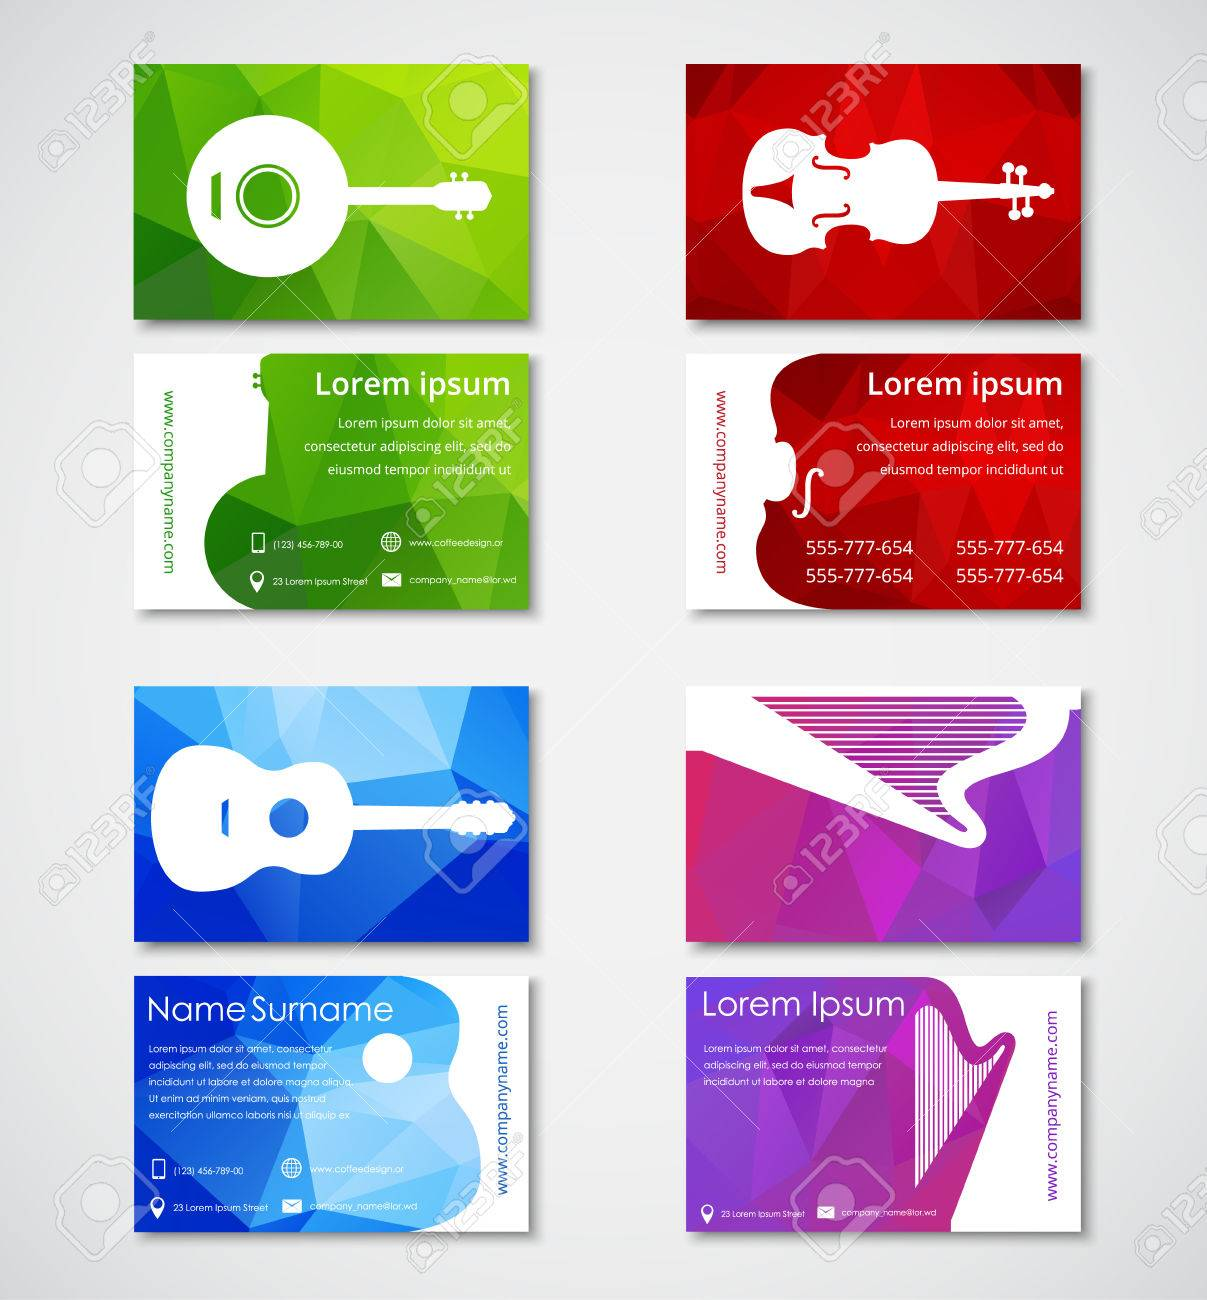 Business cards for musicians images free business cards design of business cards for musicians or music stores polygonal design of business cards for musicians magicingreecefo Images